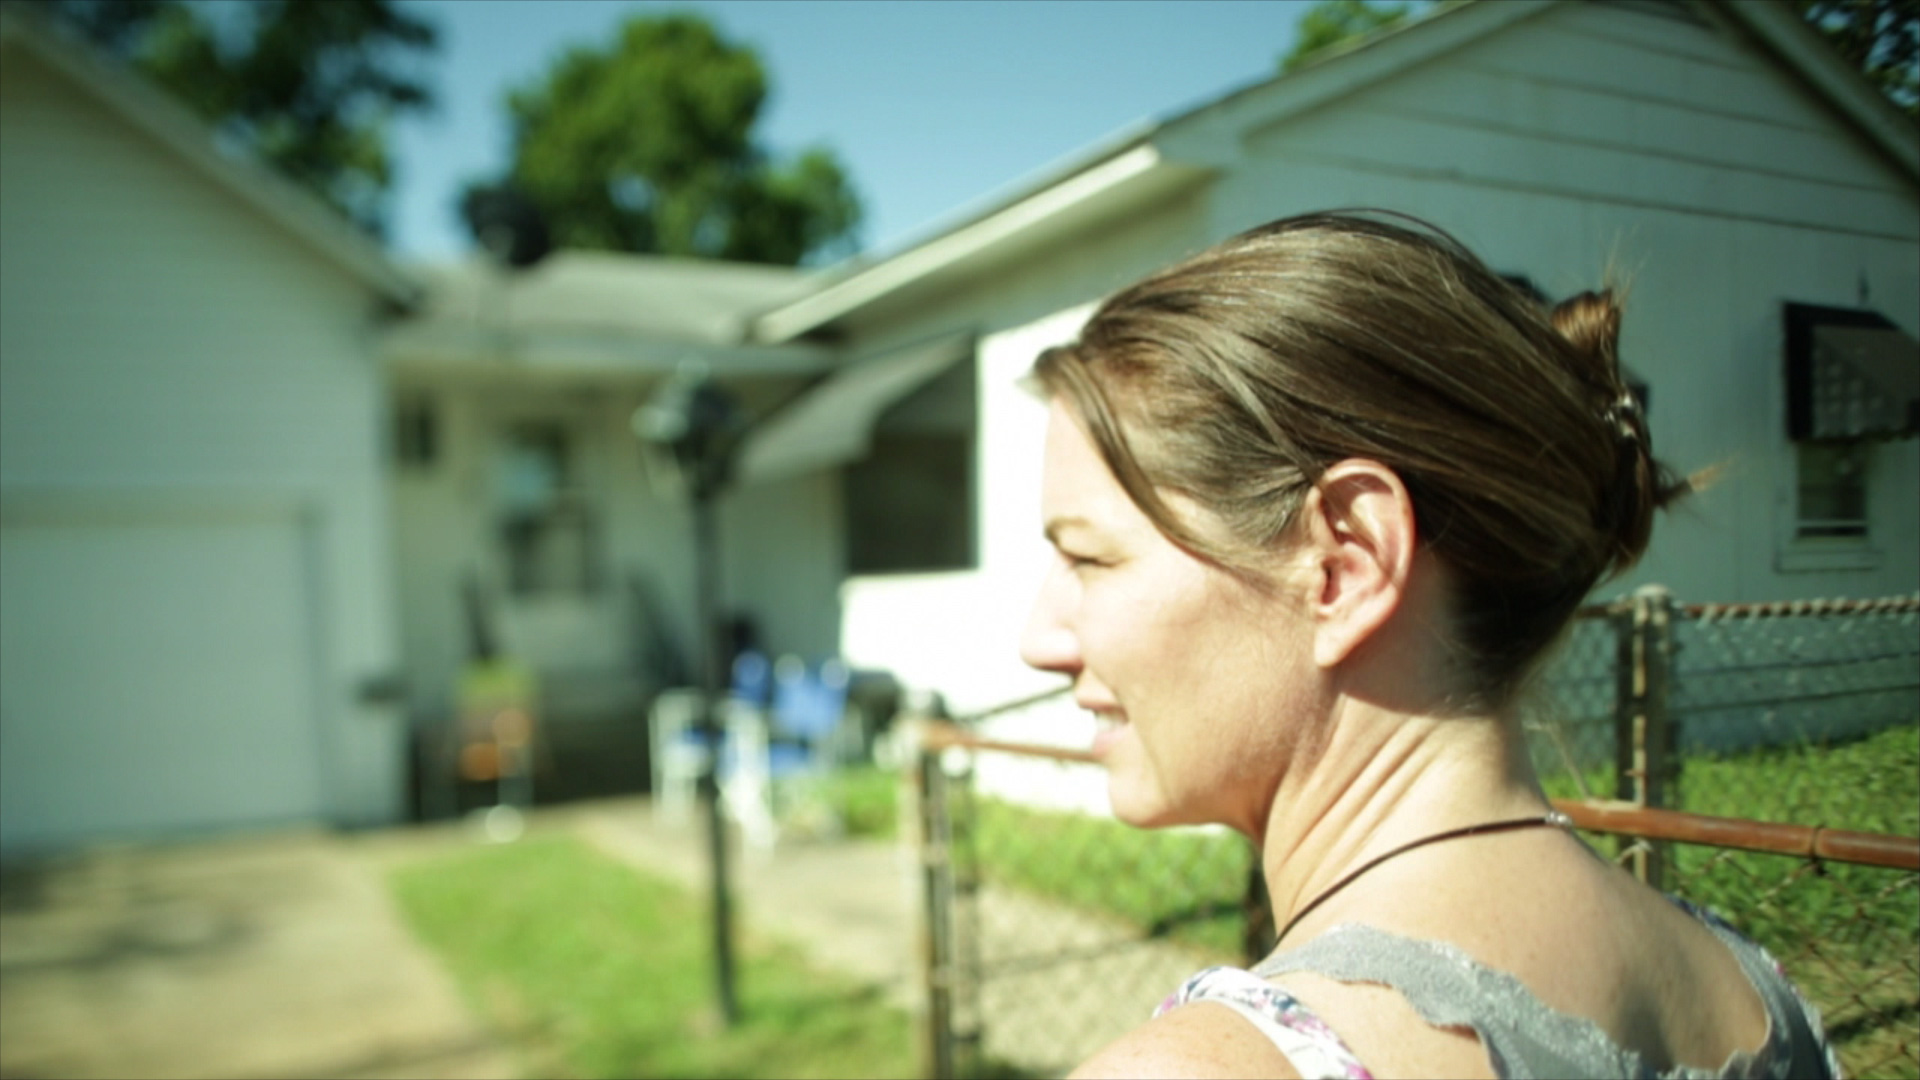 Rebecca visiting the childhood home of her father, Lewis Carpenter, in West Memphis, Arkansas (June 2012)